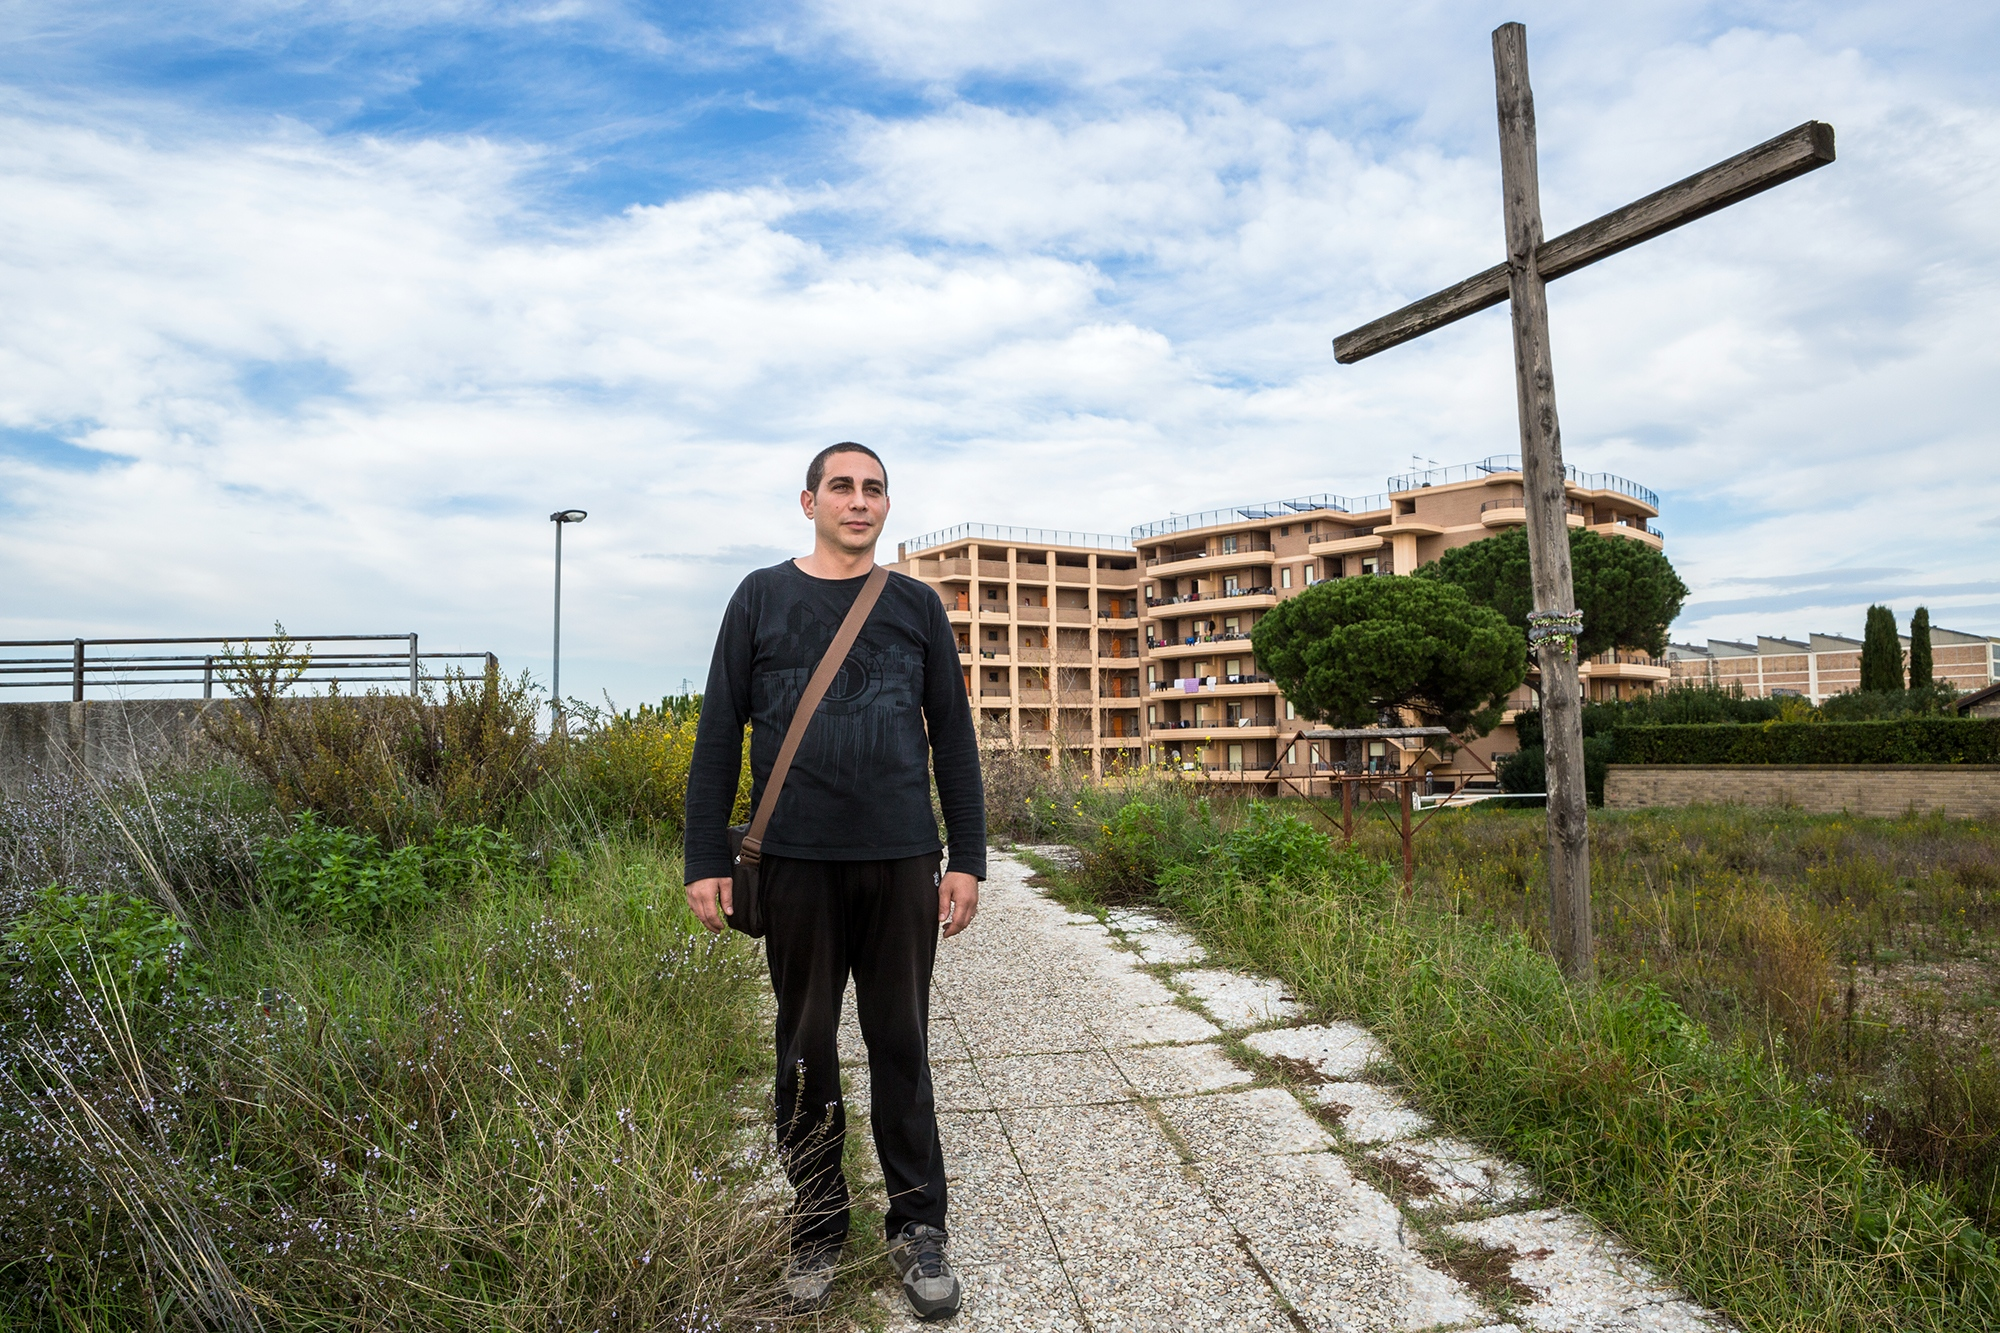 Sergio, a resident of Santa Palomba, commutes every day into Rome metropolitan area, to attend his job